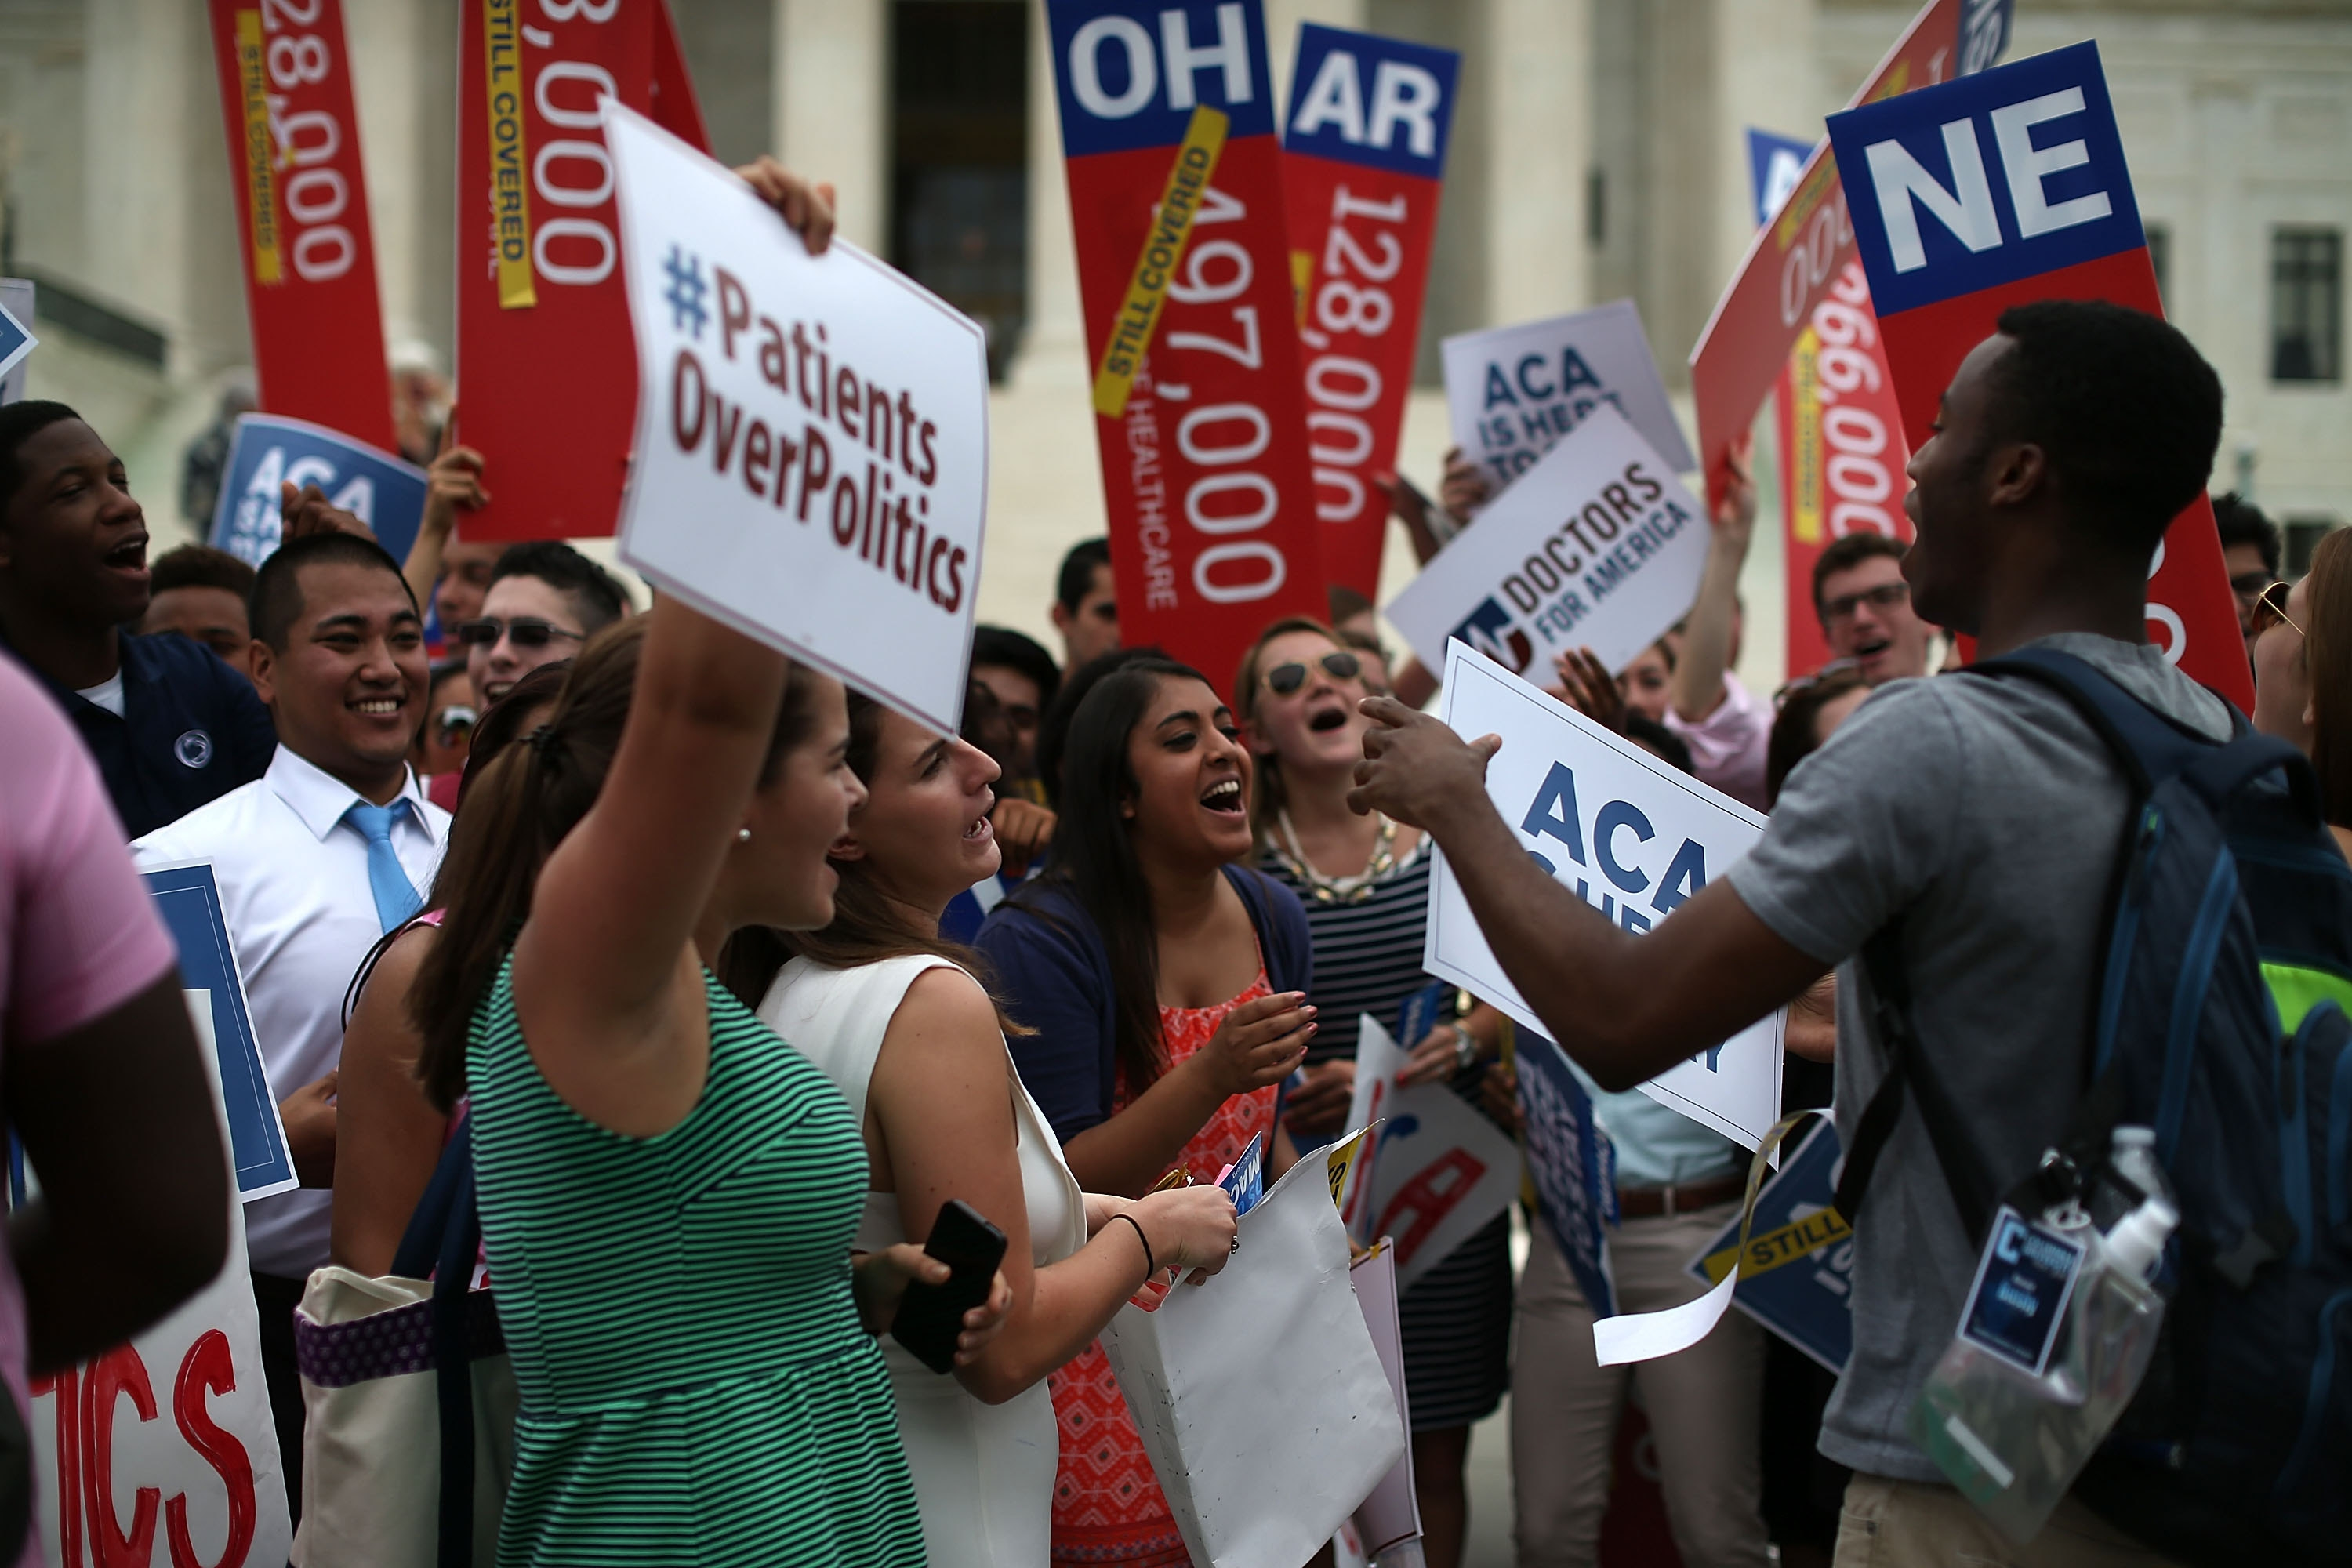 Supporters of the Affordable Care Act celebrate in front of the U.S. Supreme Court. (Getty Images)